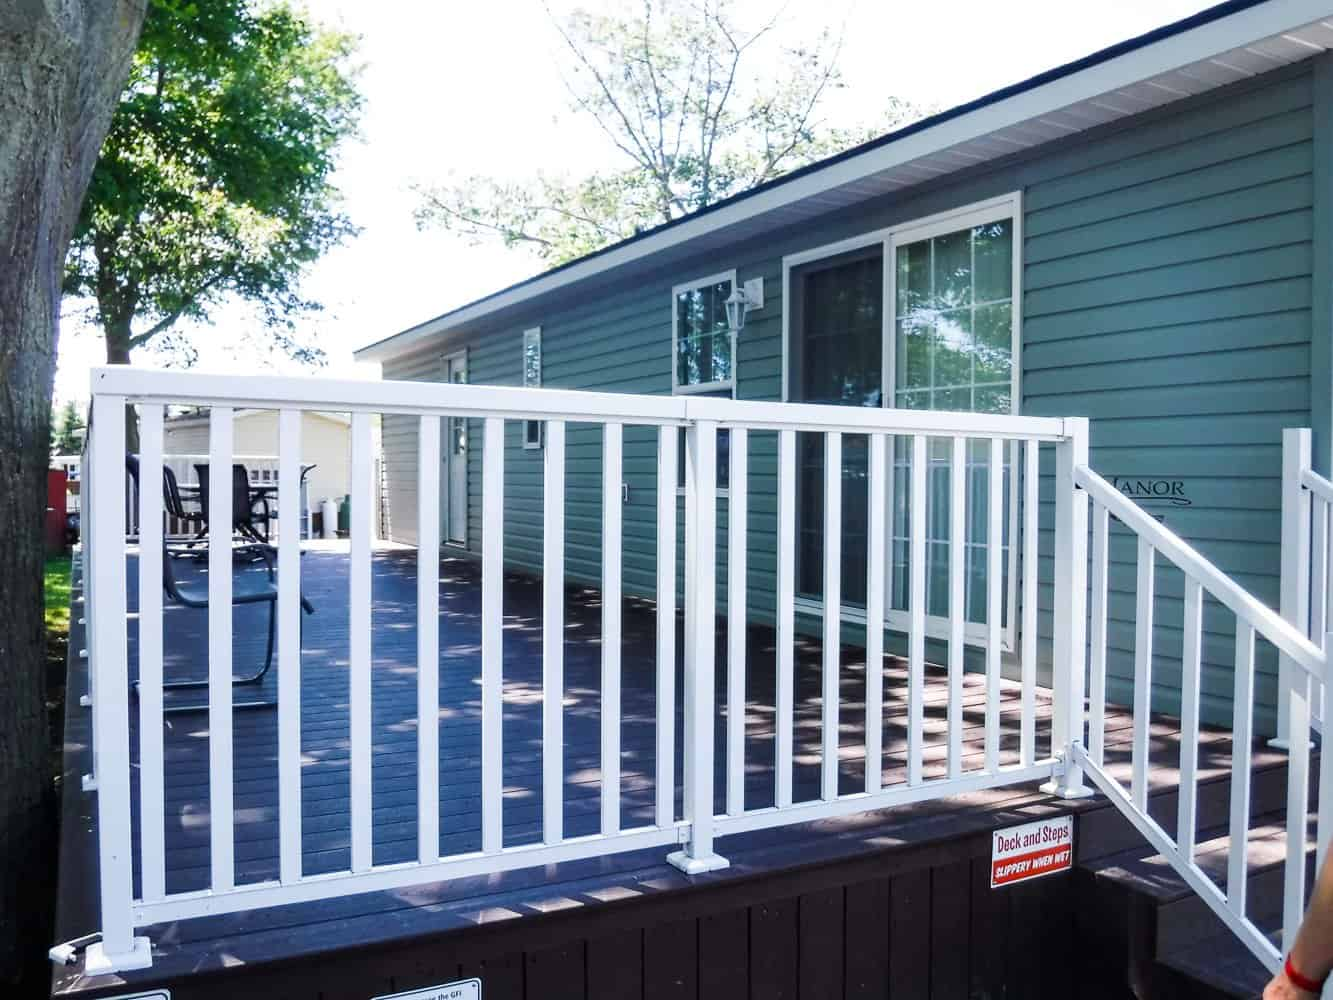 Make Vacay Matter More with Stays at Sherkston Shores! — The Deck of Our Premium Rental Cottage for the Weekend